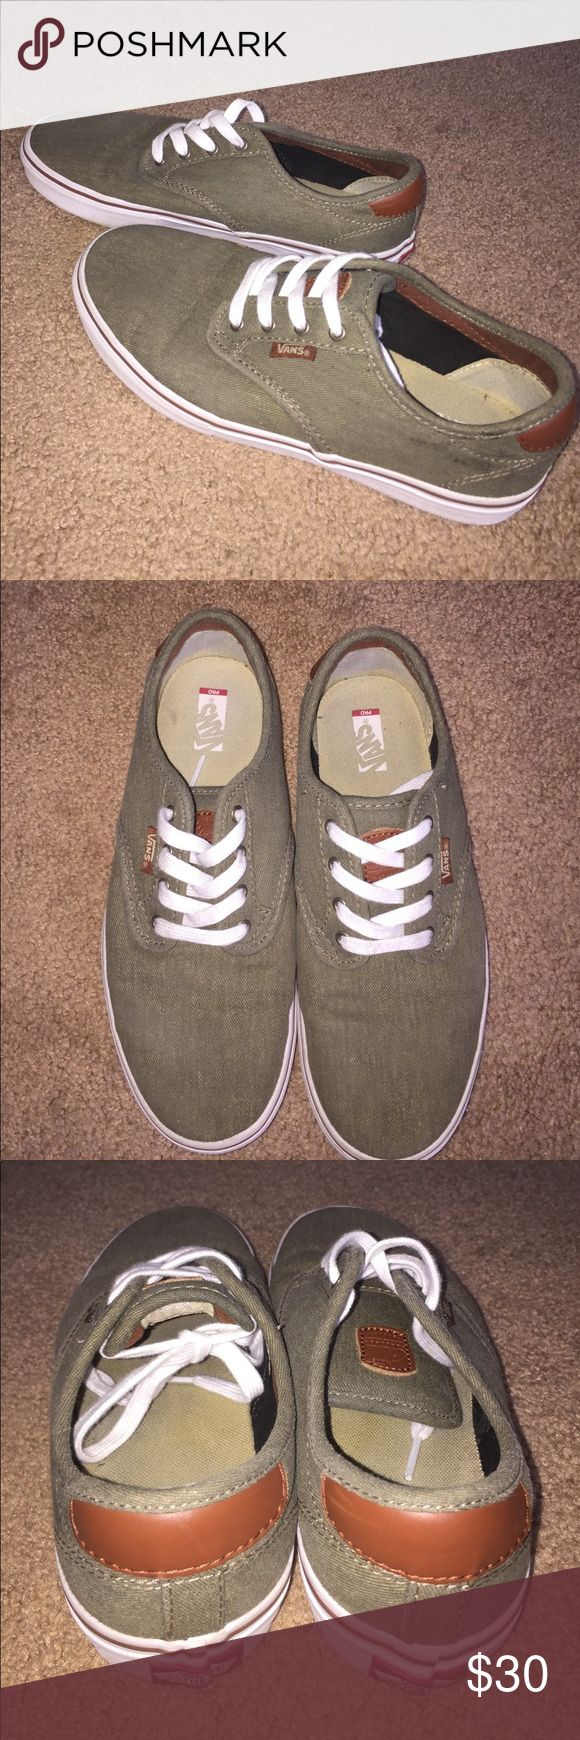 Vans Pro Skateboard Shoes, Green & Brown Leather These shoes are gently used.  I wore them only a few times (women's size 7.5).  They are boys size 6 but can also fit women.  They have more arch support and cushioning than typical Vans shoes.  They also come with an extra pair of army/olive green laces! Let me know if you have any questions :) Vans Shoes